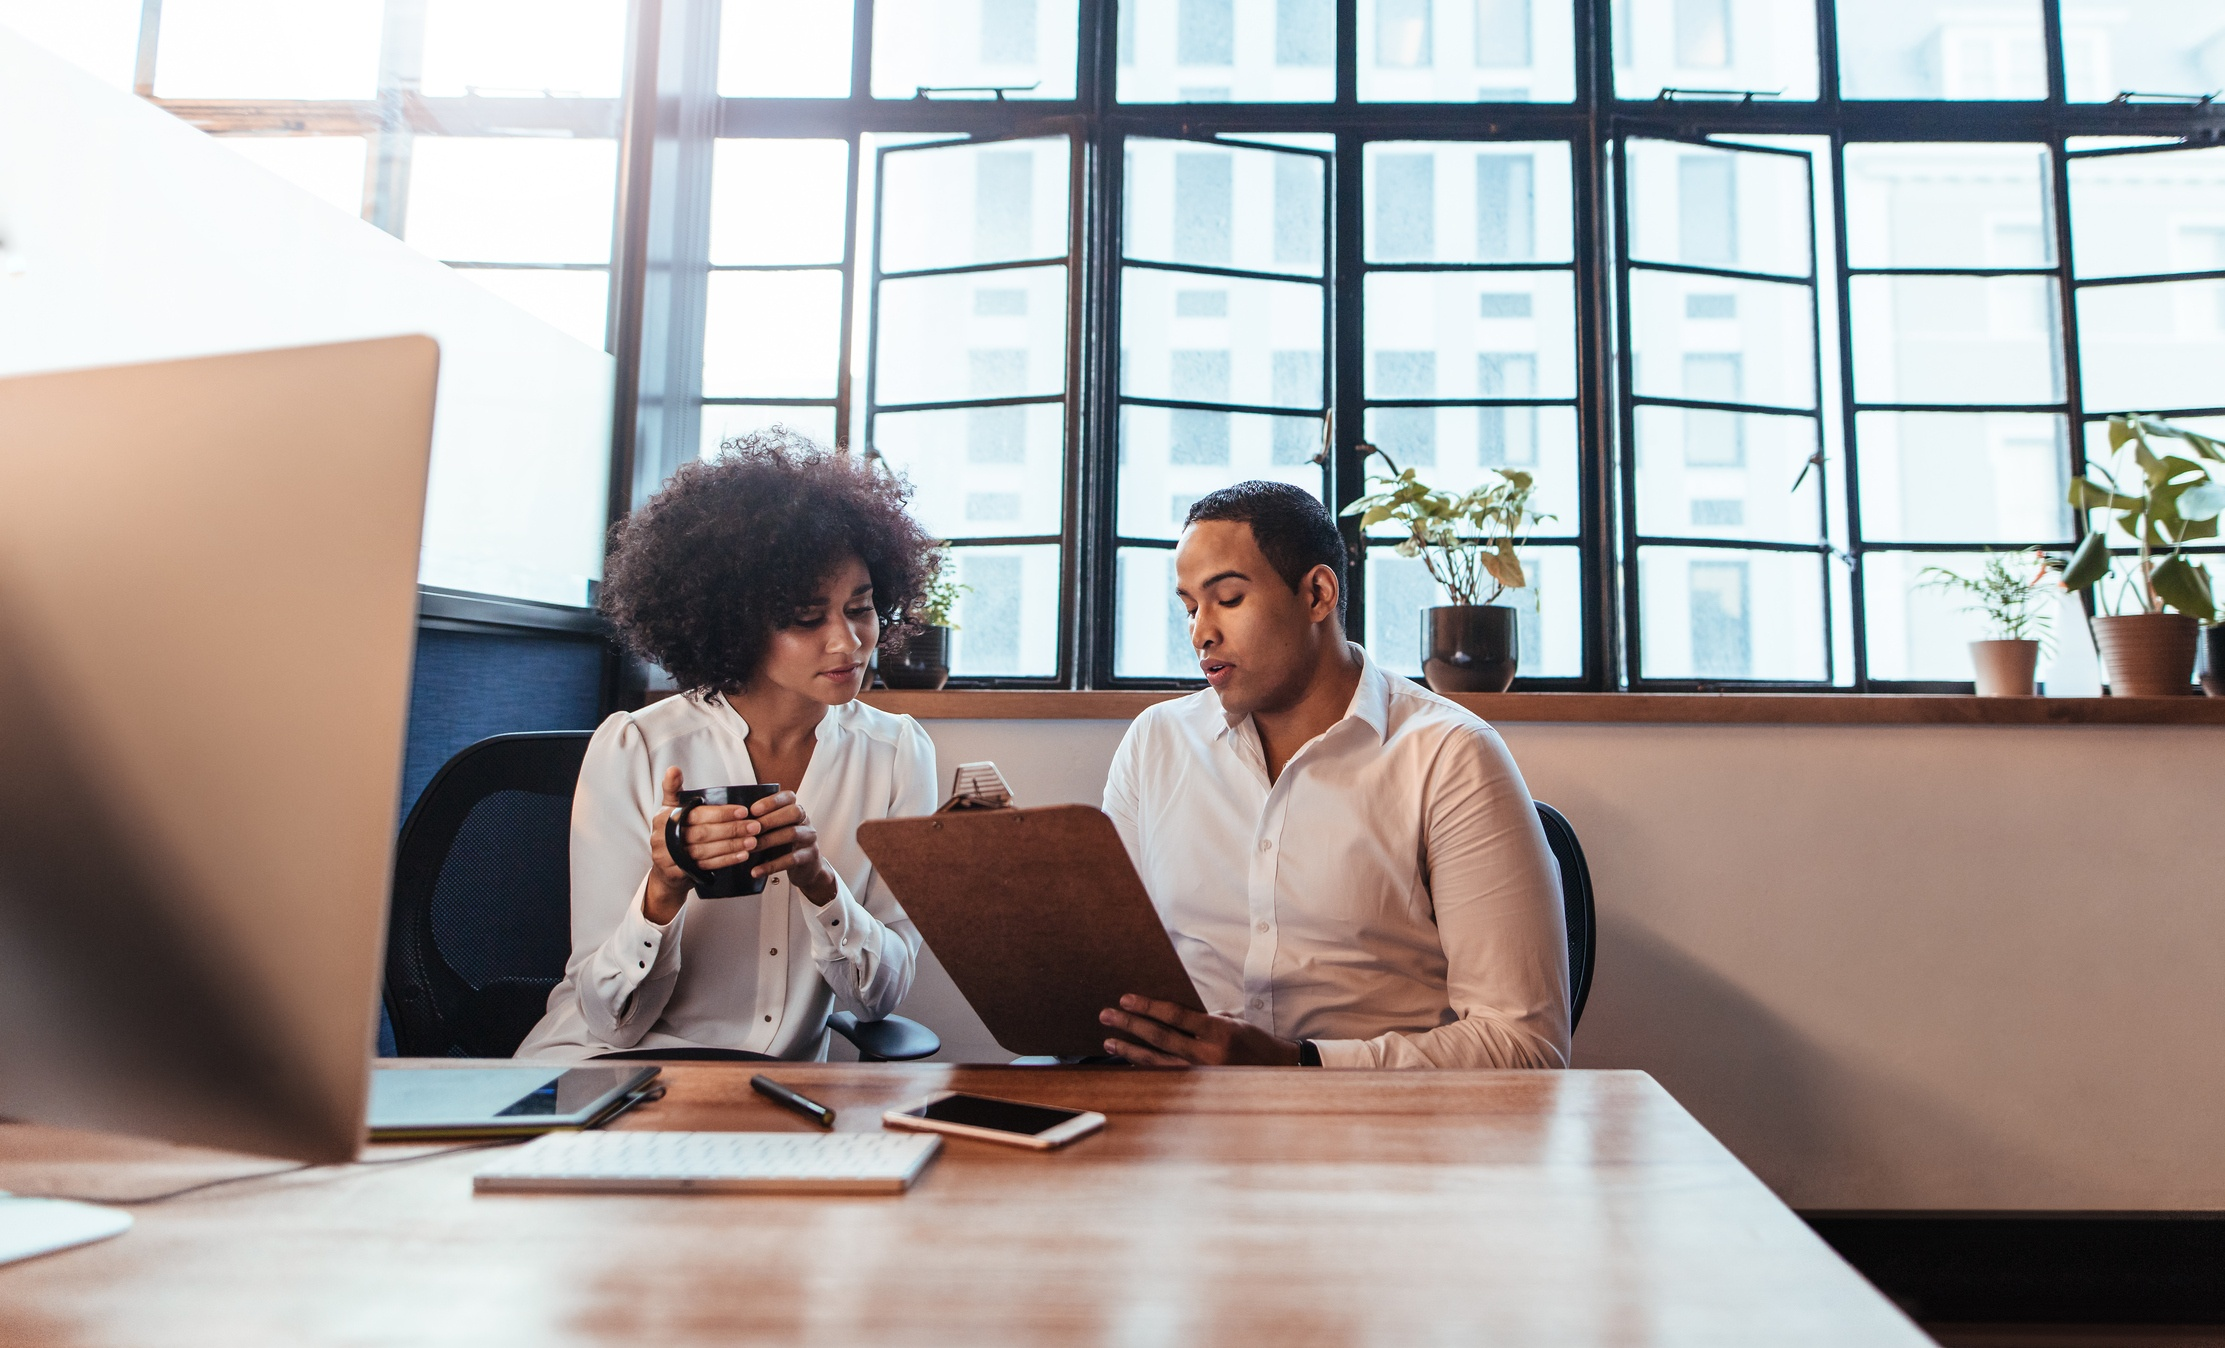 Two small business employees working at a desk looking at a clipboard